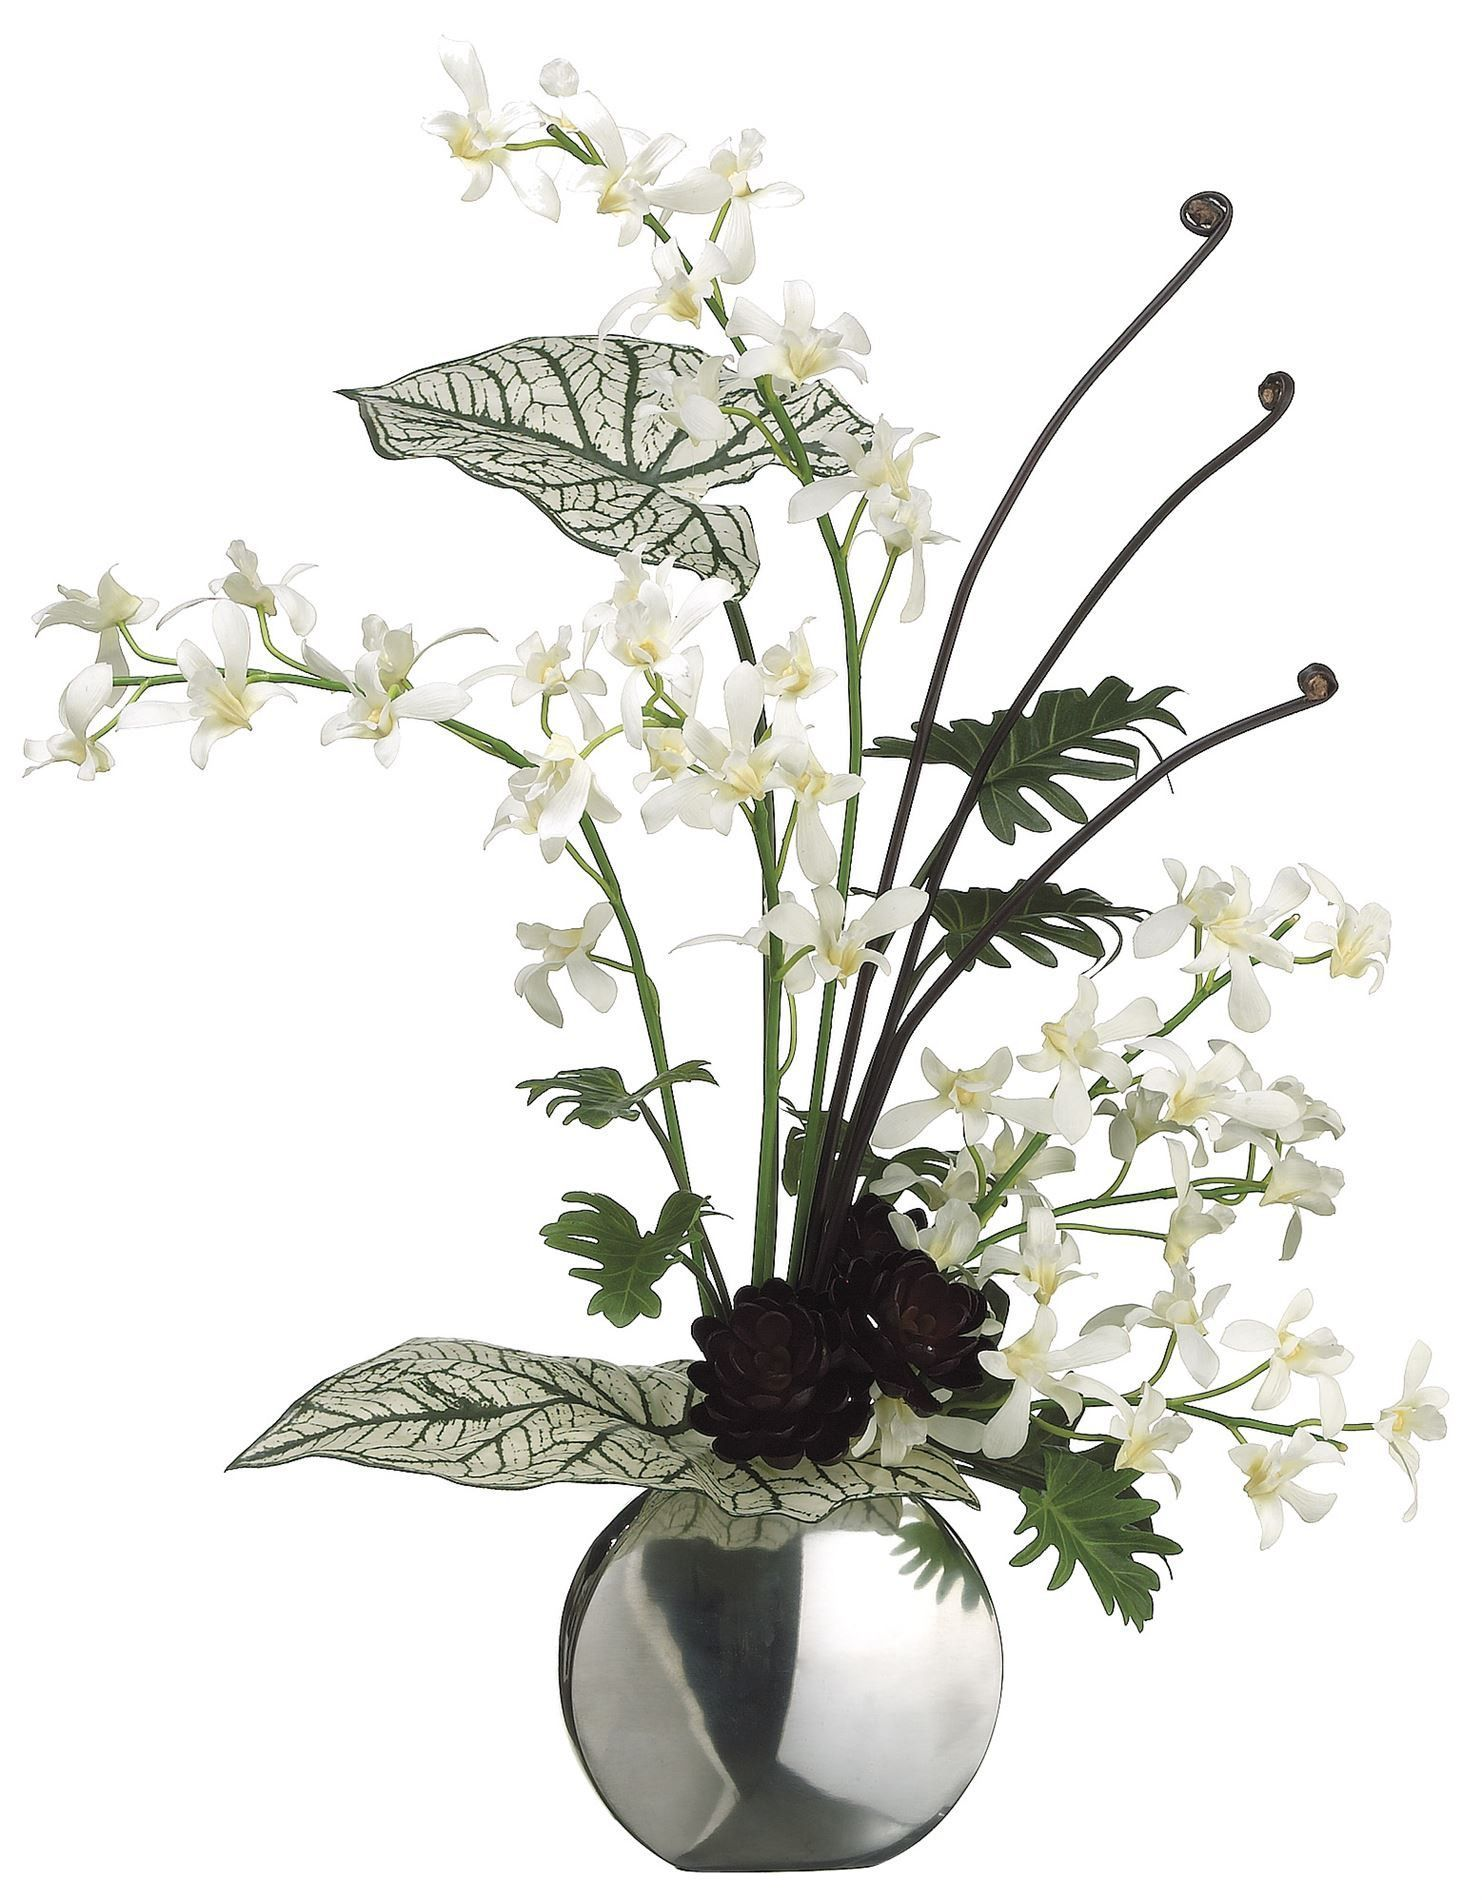 Lifelike white dendrobium orchids in a silver vase floral lifelike white dendrobium orchids in a silver vase floral arrangement reviewsmspy